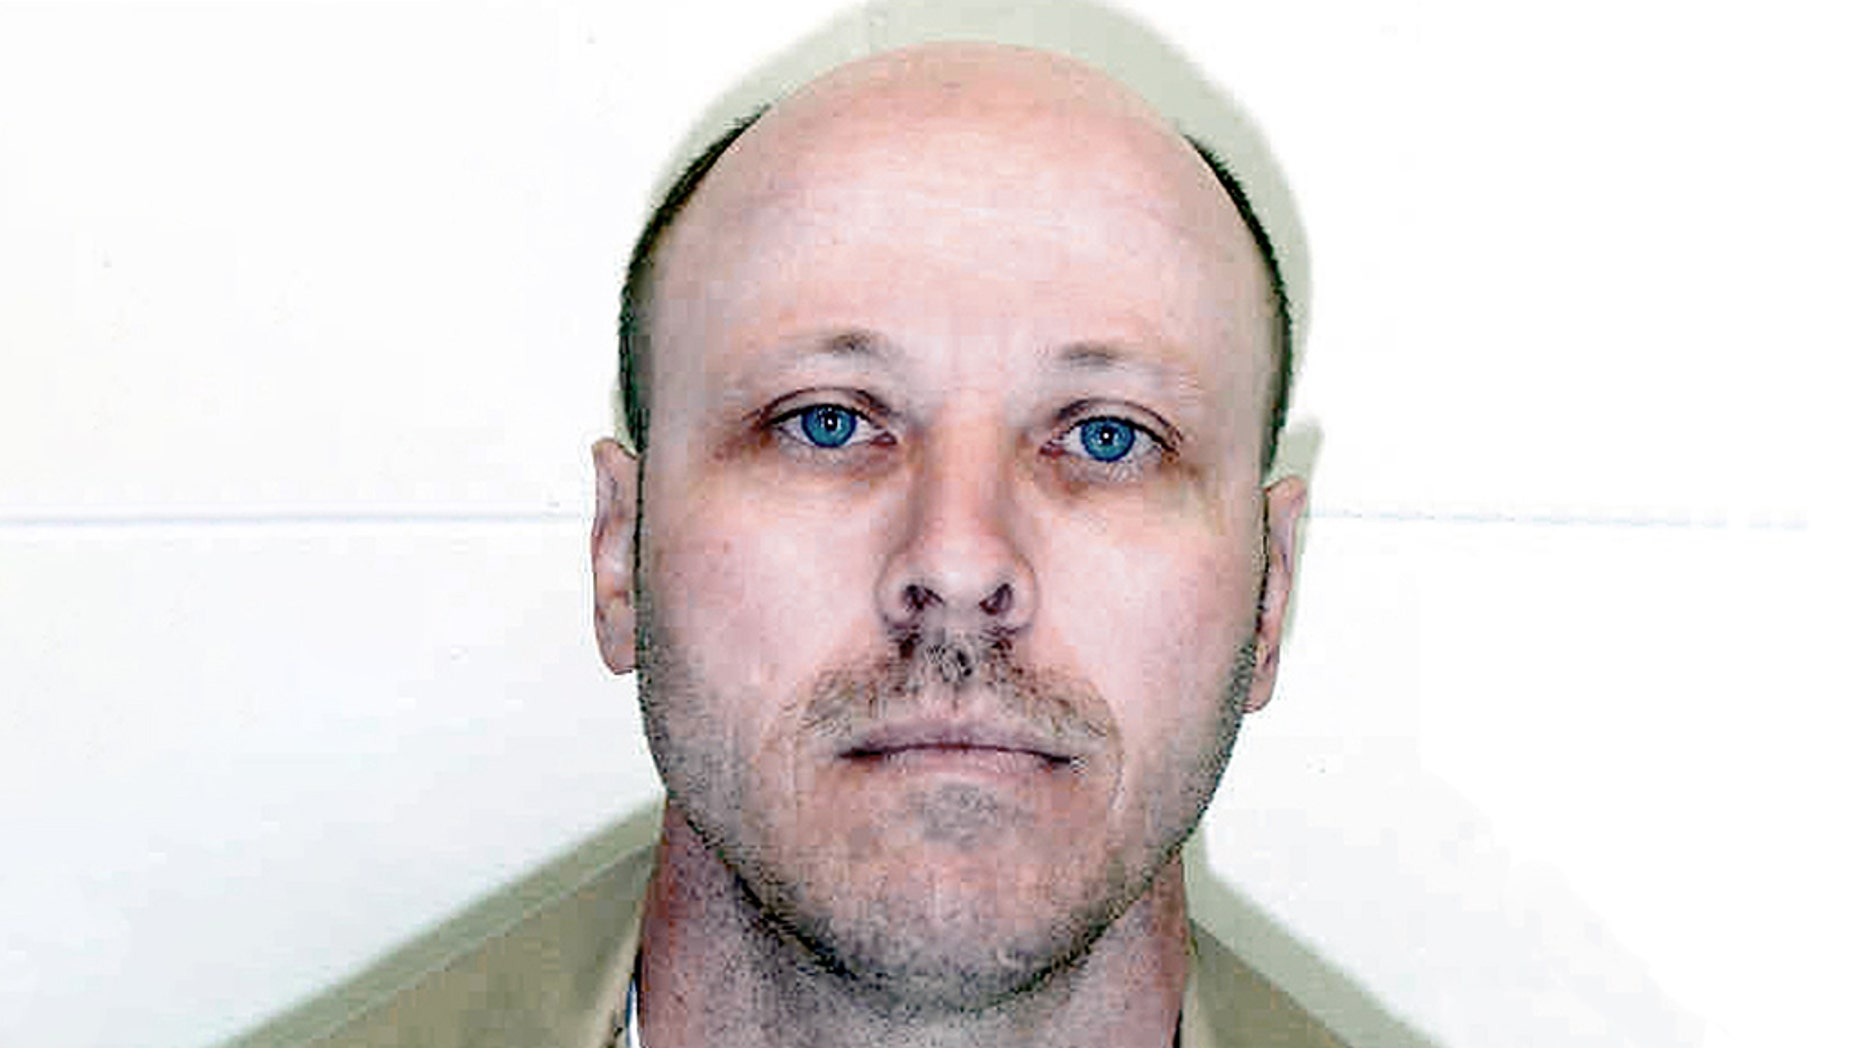 The Nebraska Supreme Court issued a death warrant for Carey Dean Moore, who has spent nearly four decades on death row for the 1979 shootings deaths of two Omaha cab drivers. Justices set the execution date for Aug. 14 at midnight, a few weeks before the state's supply of a key lethal injection drug is set to expire. It's Nebraska's first execution in 21 years. (The Associated Press)